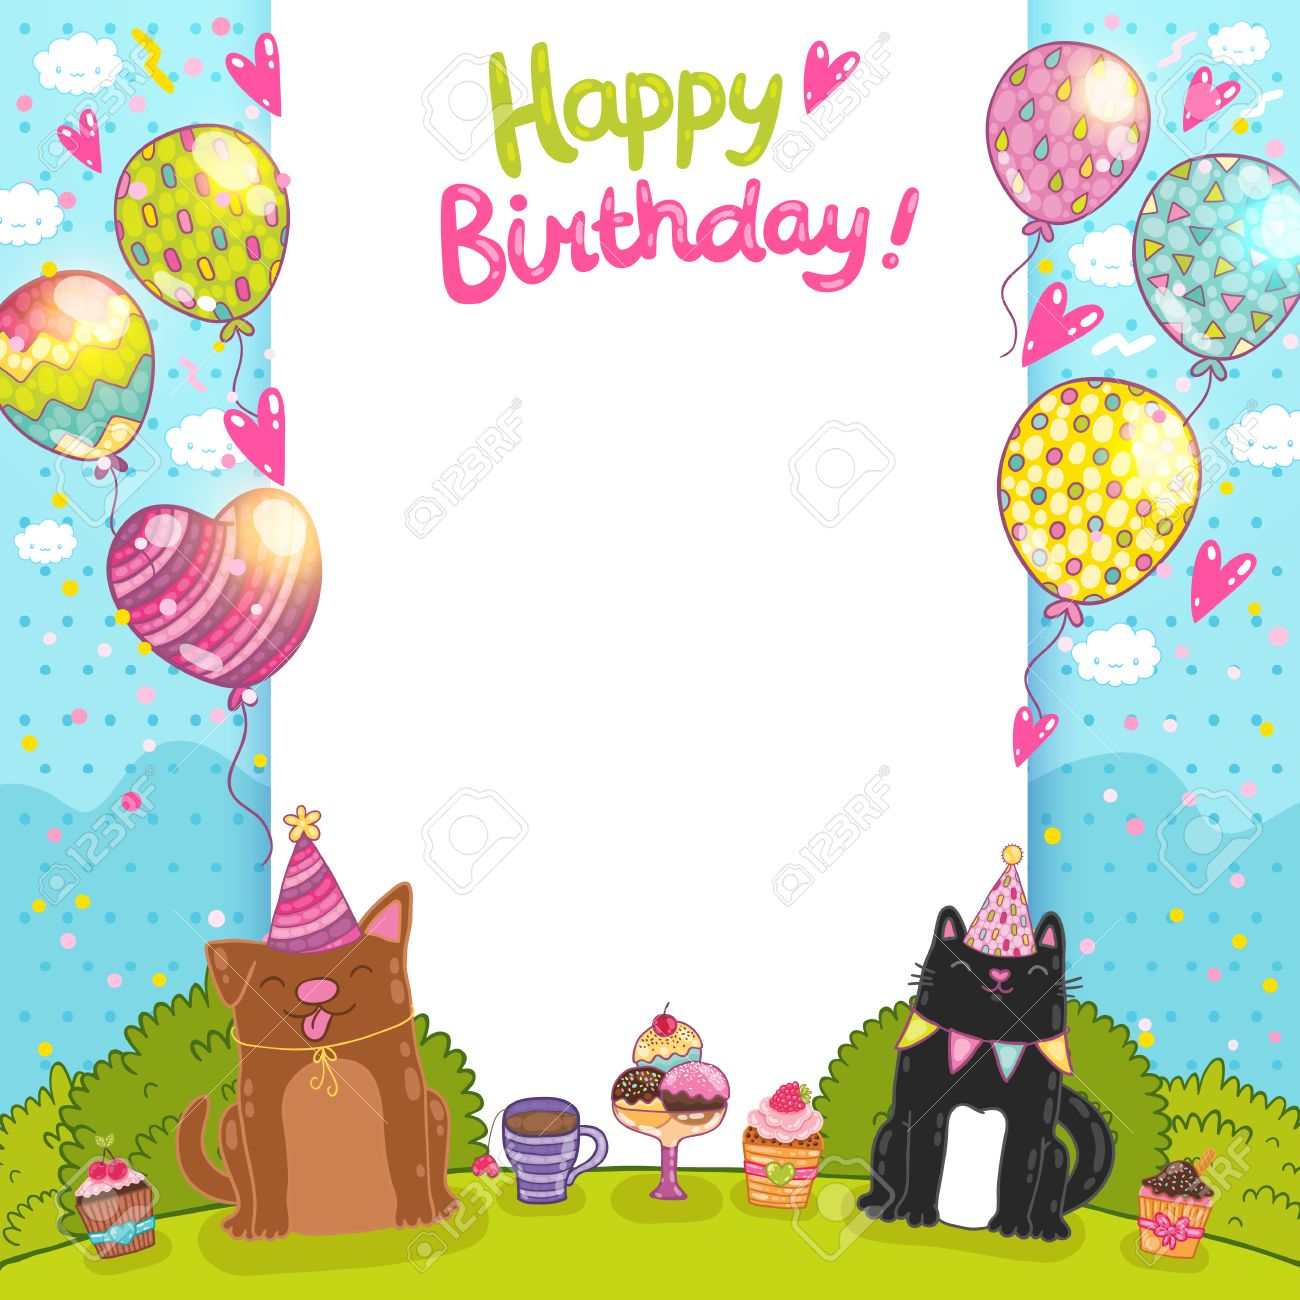 Happy Birthday Card Background With A Cat Dog And Cupcakes Royalty